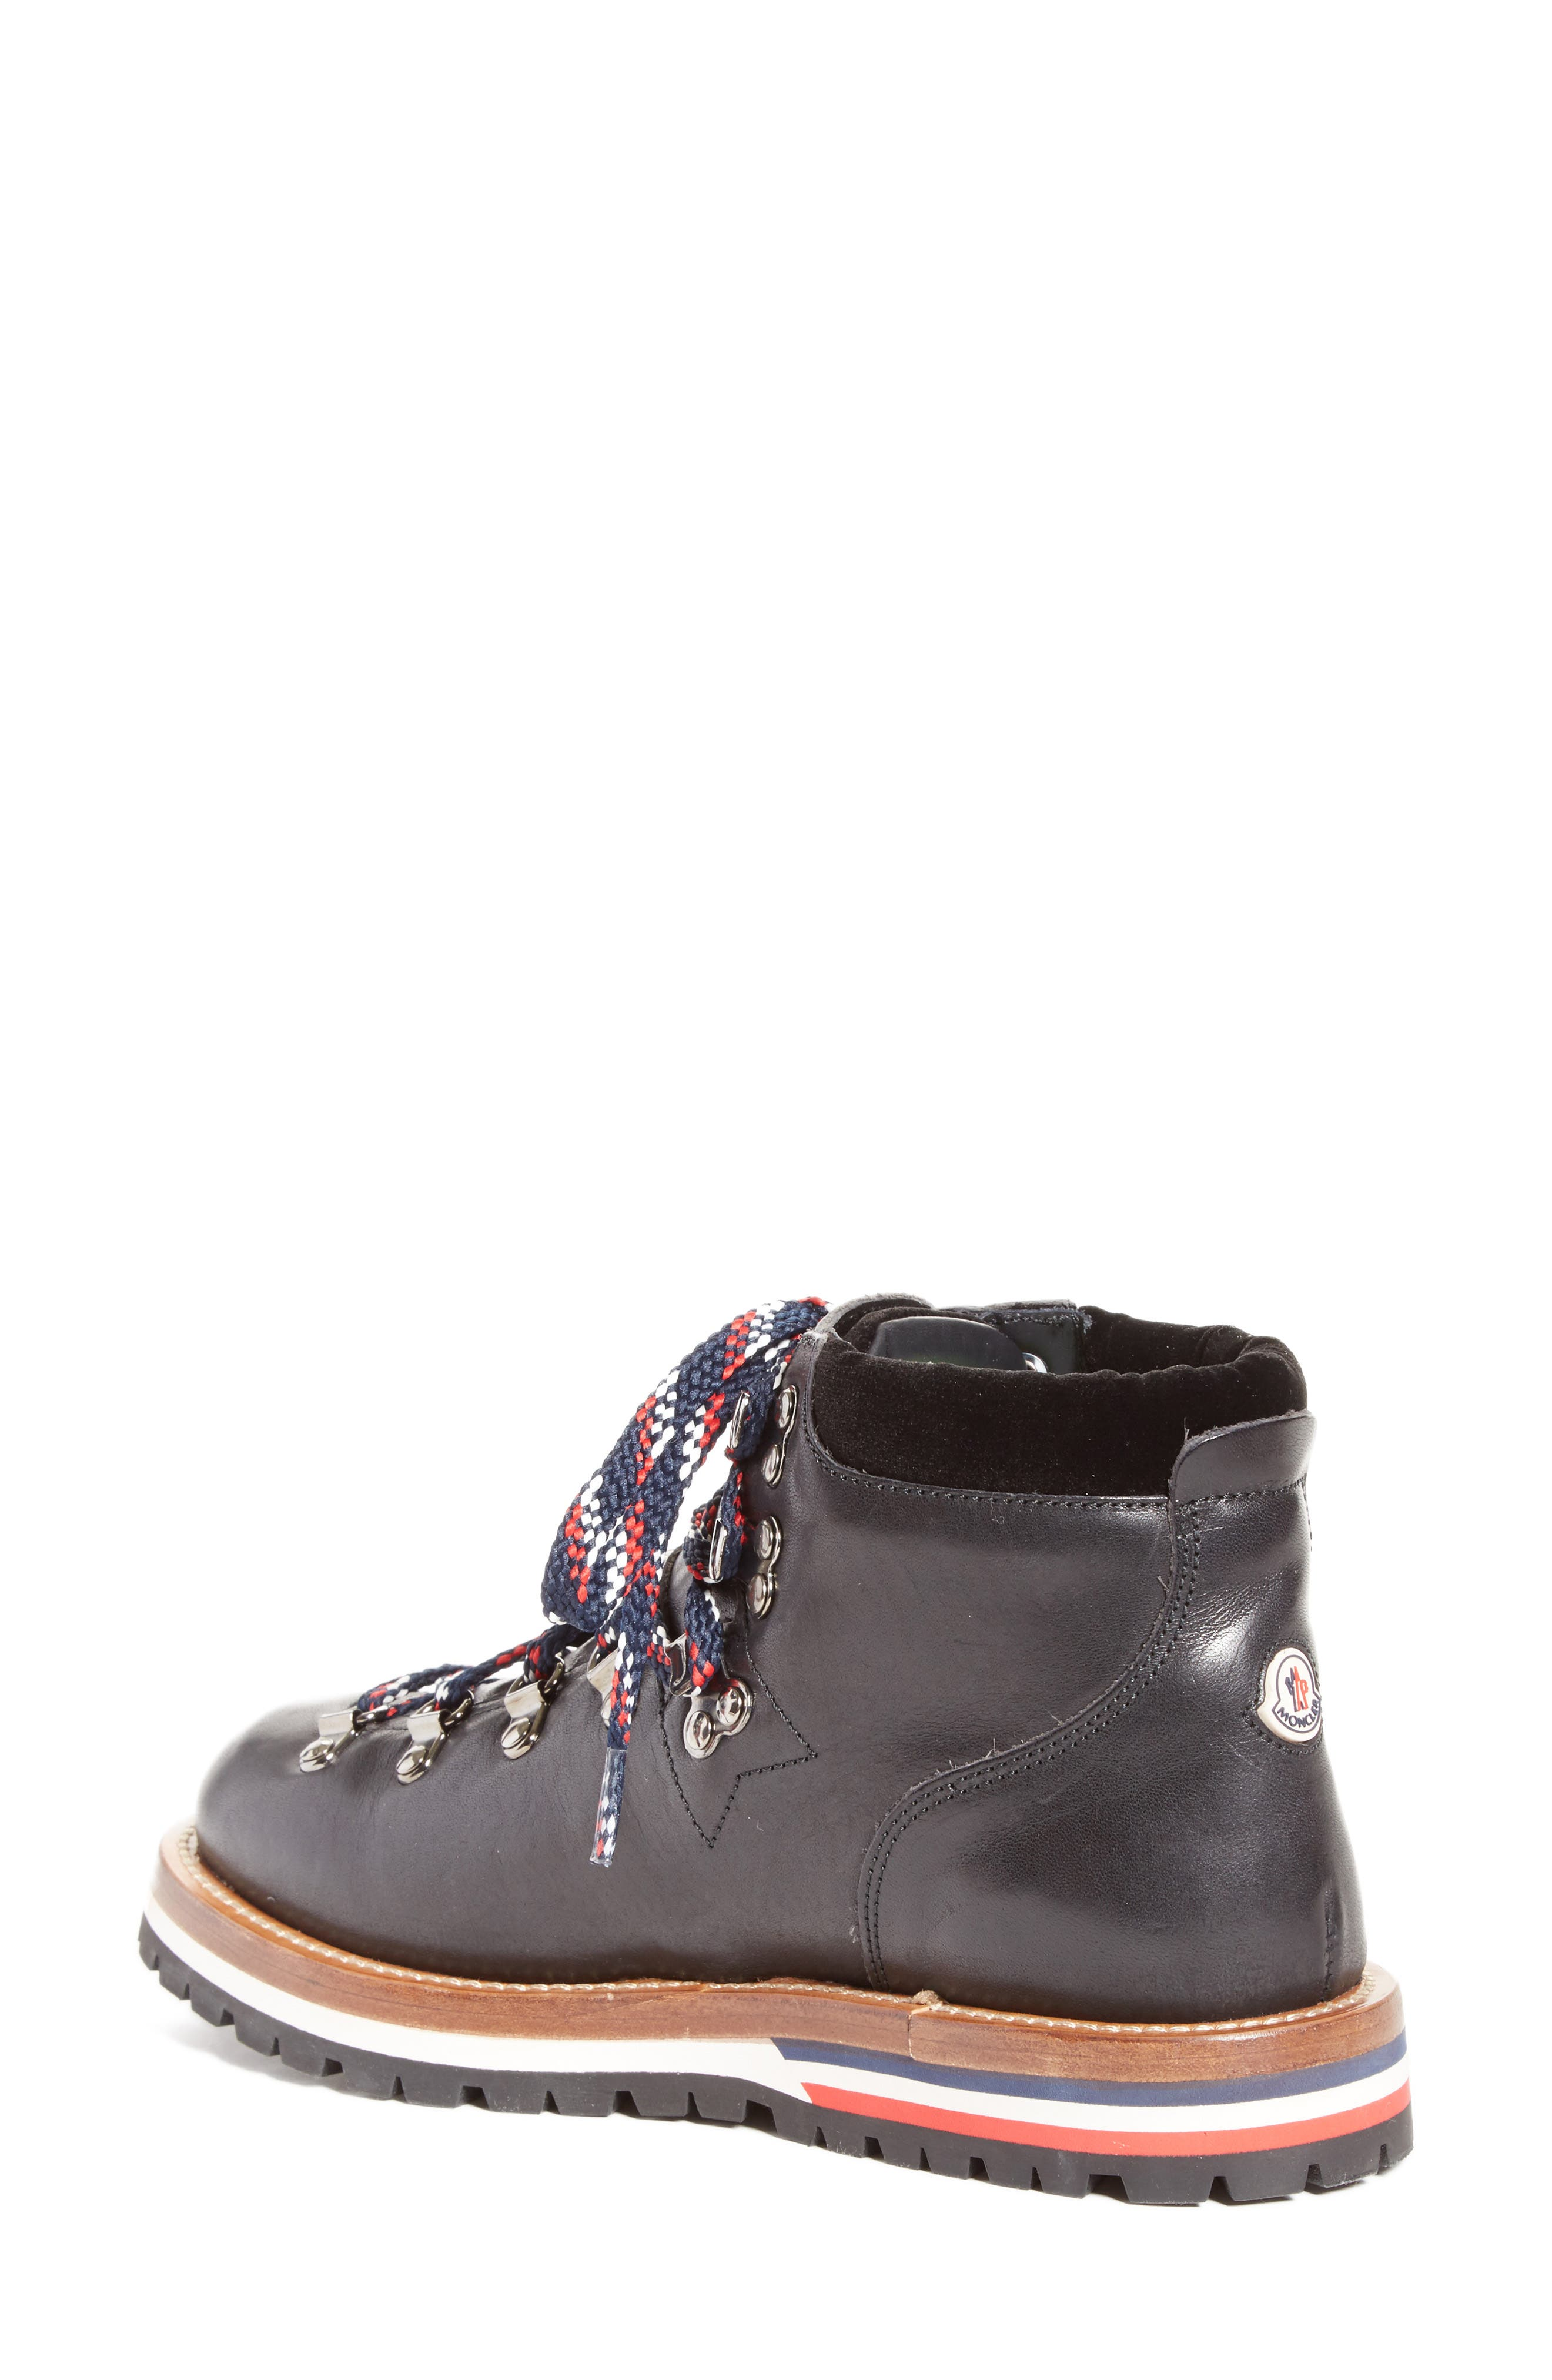 Blanche Lace-up Boot,                             Alternate thumbnail 2, color,                             BLACK